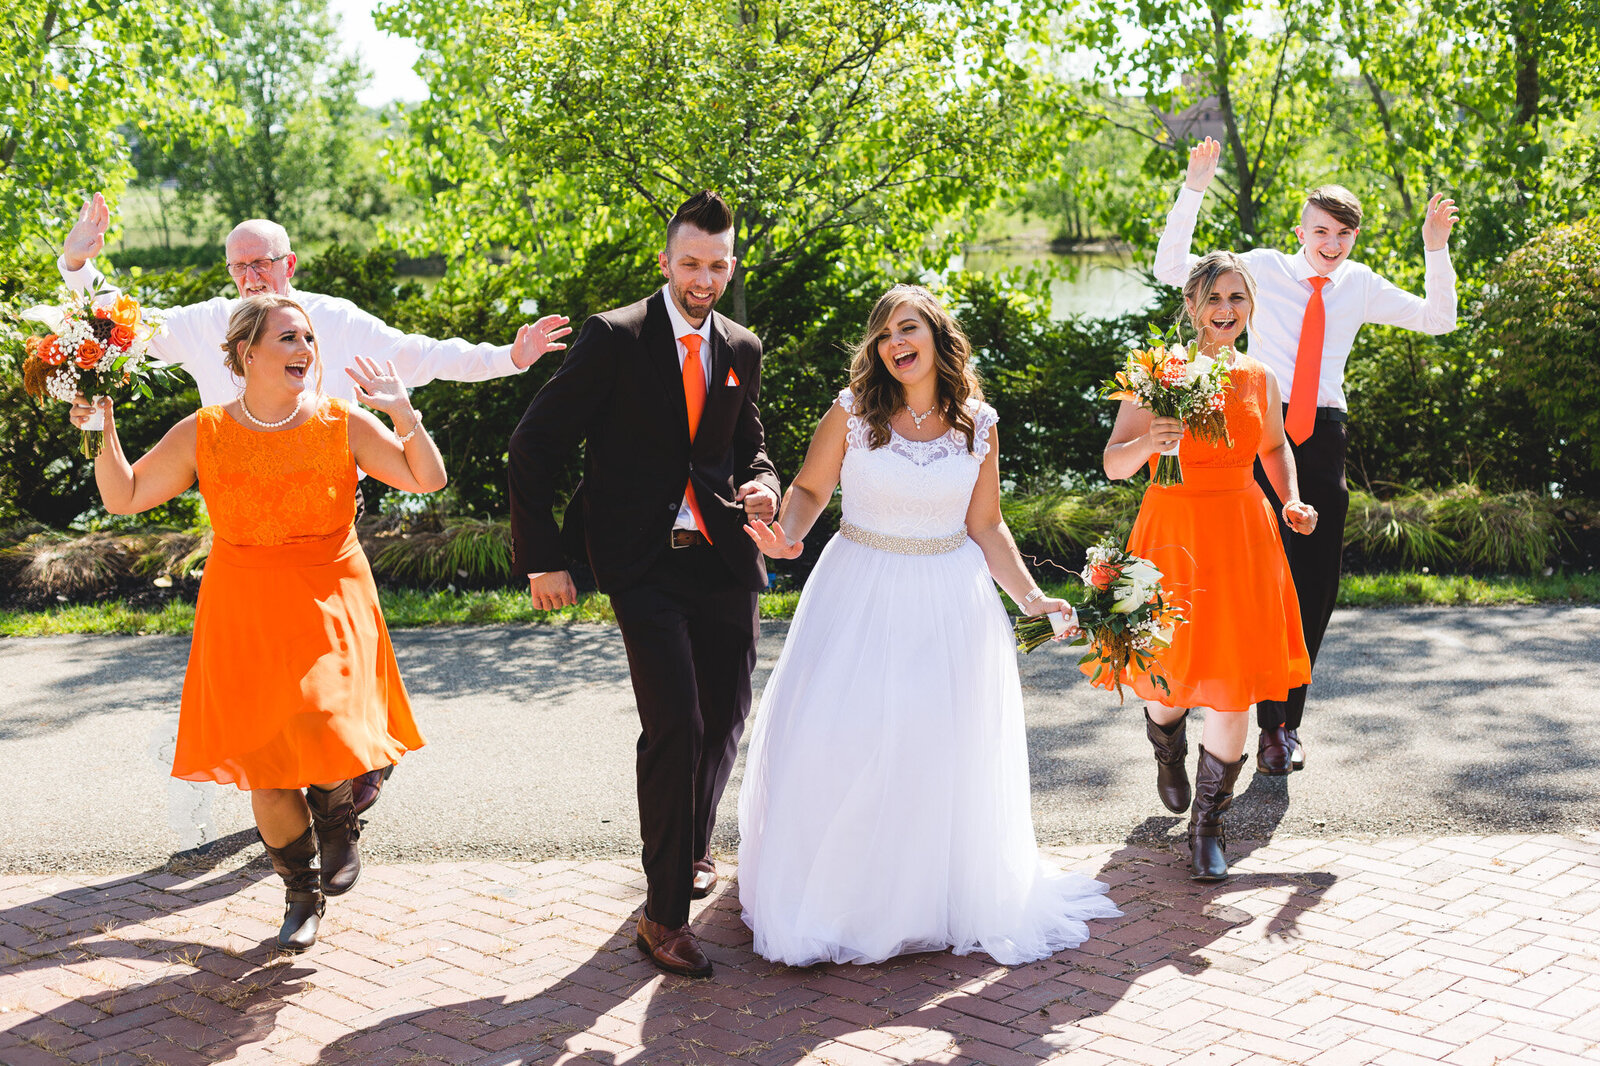 bridal party dancing in orange during portraits ohio wedding